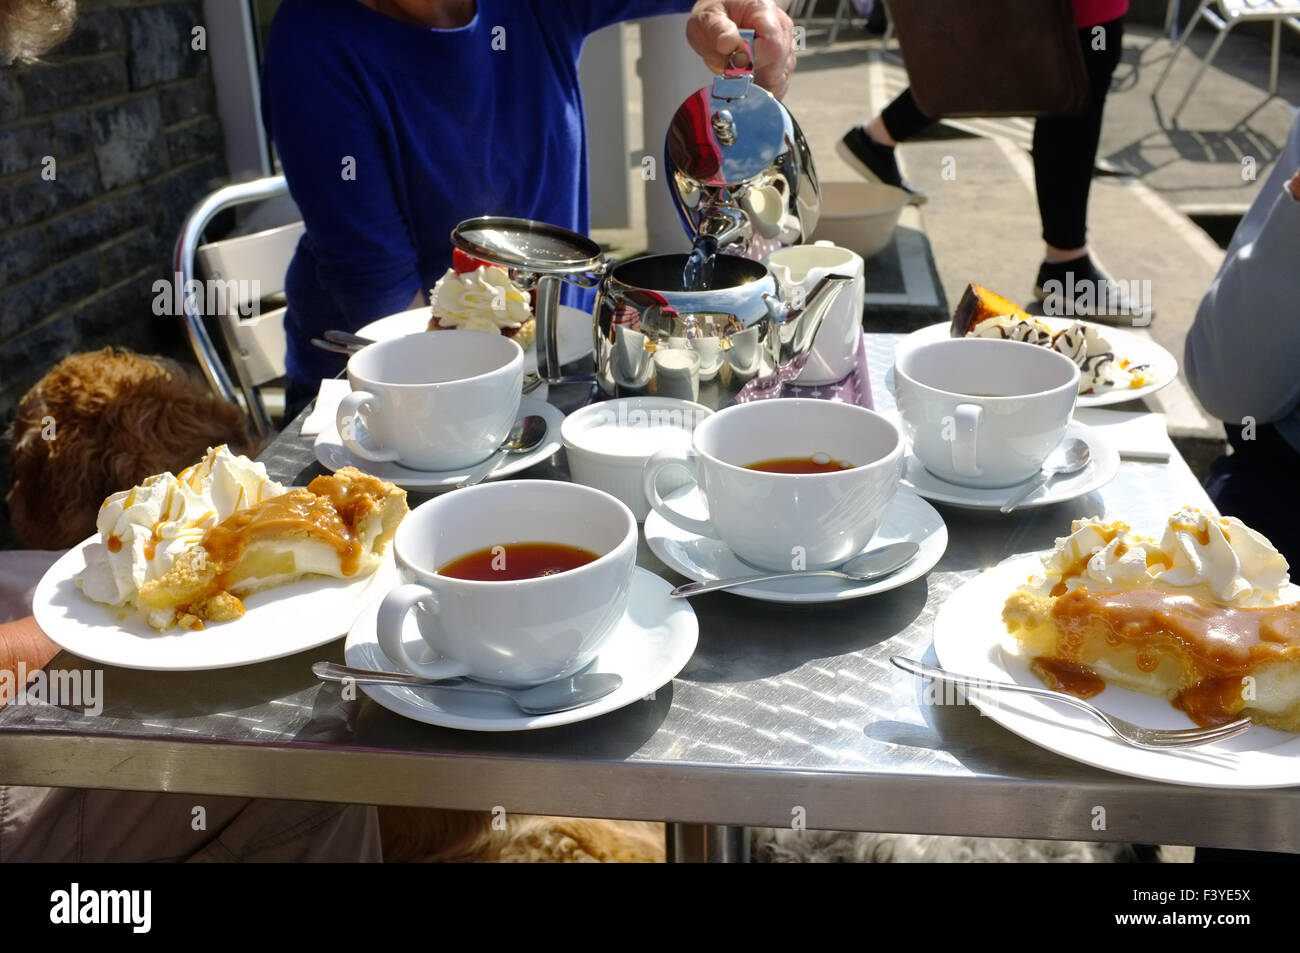 A table full of cups of tea and plates of cake for afternoon tea at a seaside cafe serving afternoon tea in Wales. & A table full of cups of tea and plates of cake for afternoon tea at ...